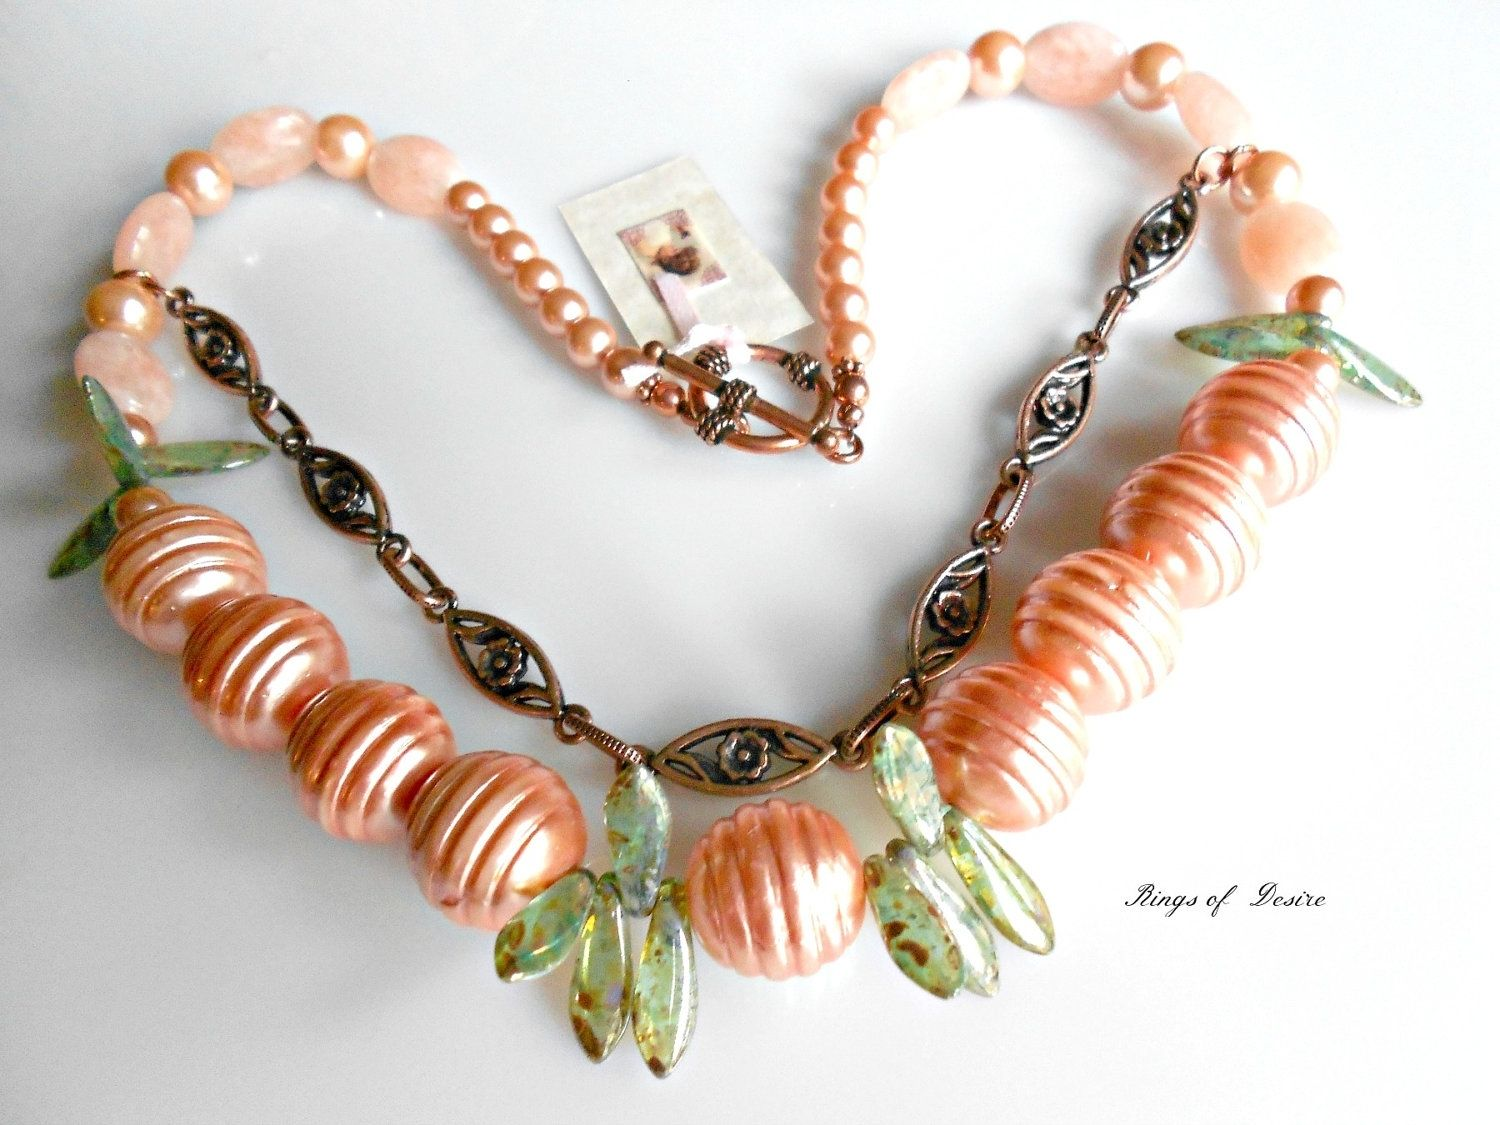 brown freshwater on pearls peach in peachpearls red two anecklace necklace vendor leather brownleather a dogs pod w podtasselnecklacethreeroundwhitefreshwaterpearls